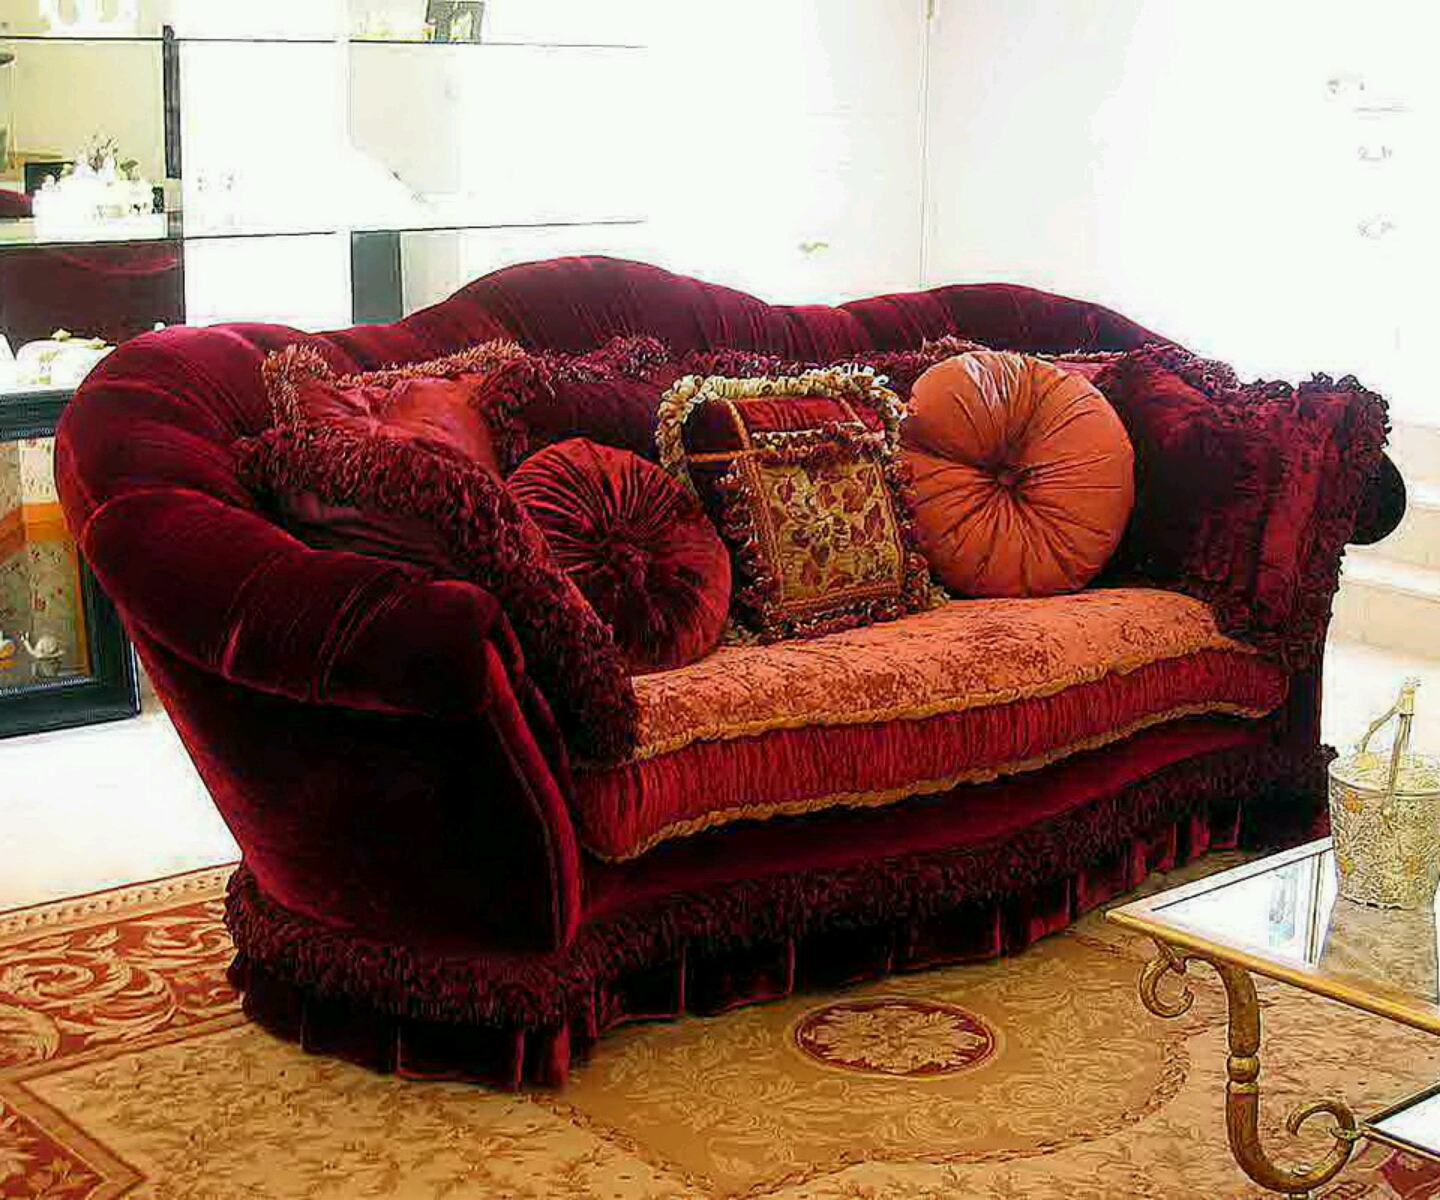 Fantastic Couch Cushions Ideal Couch